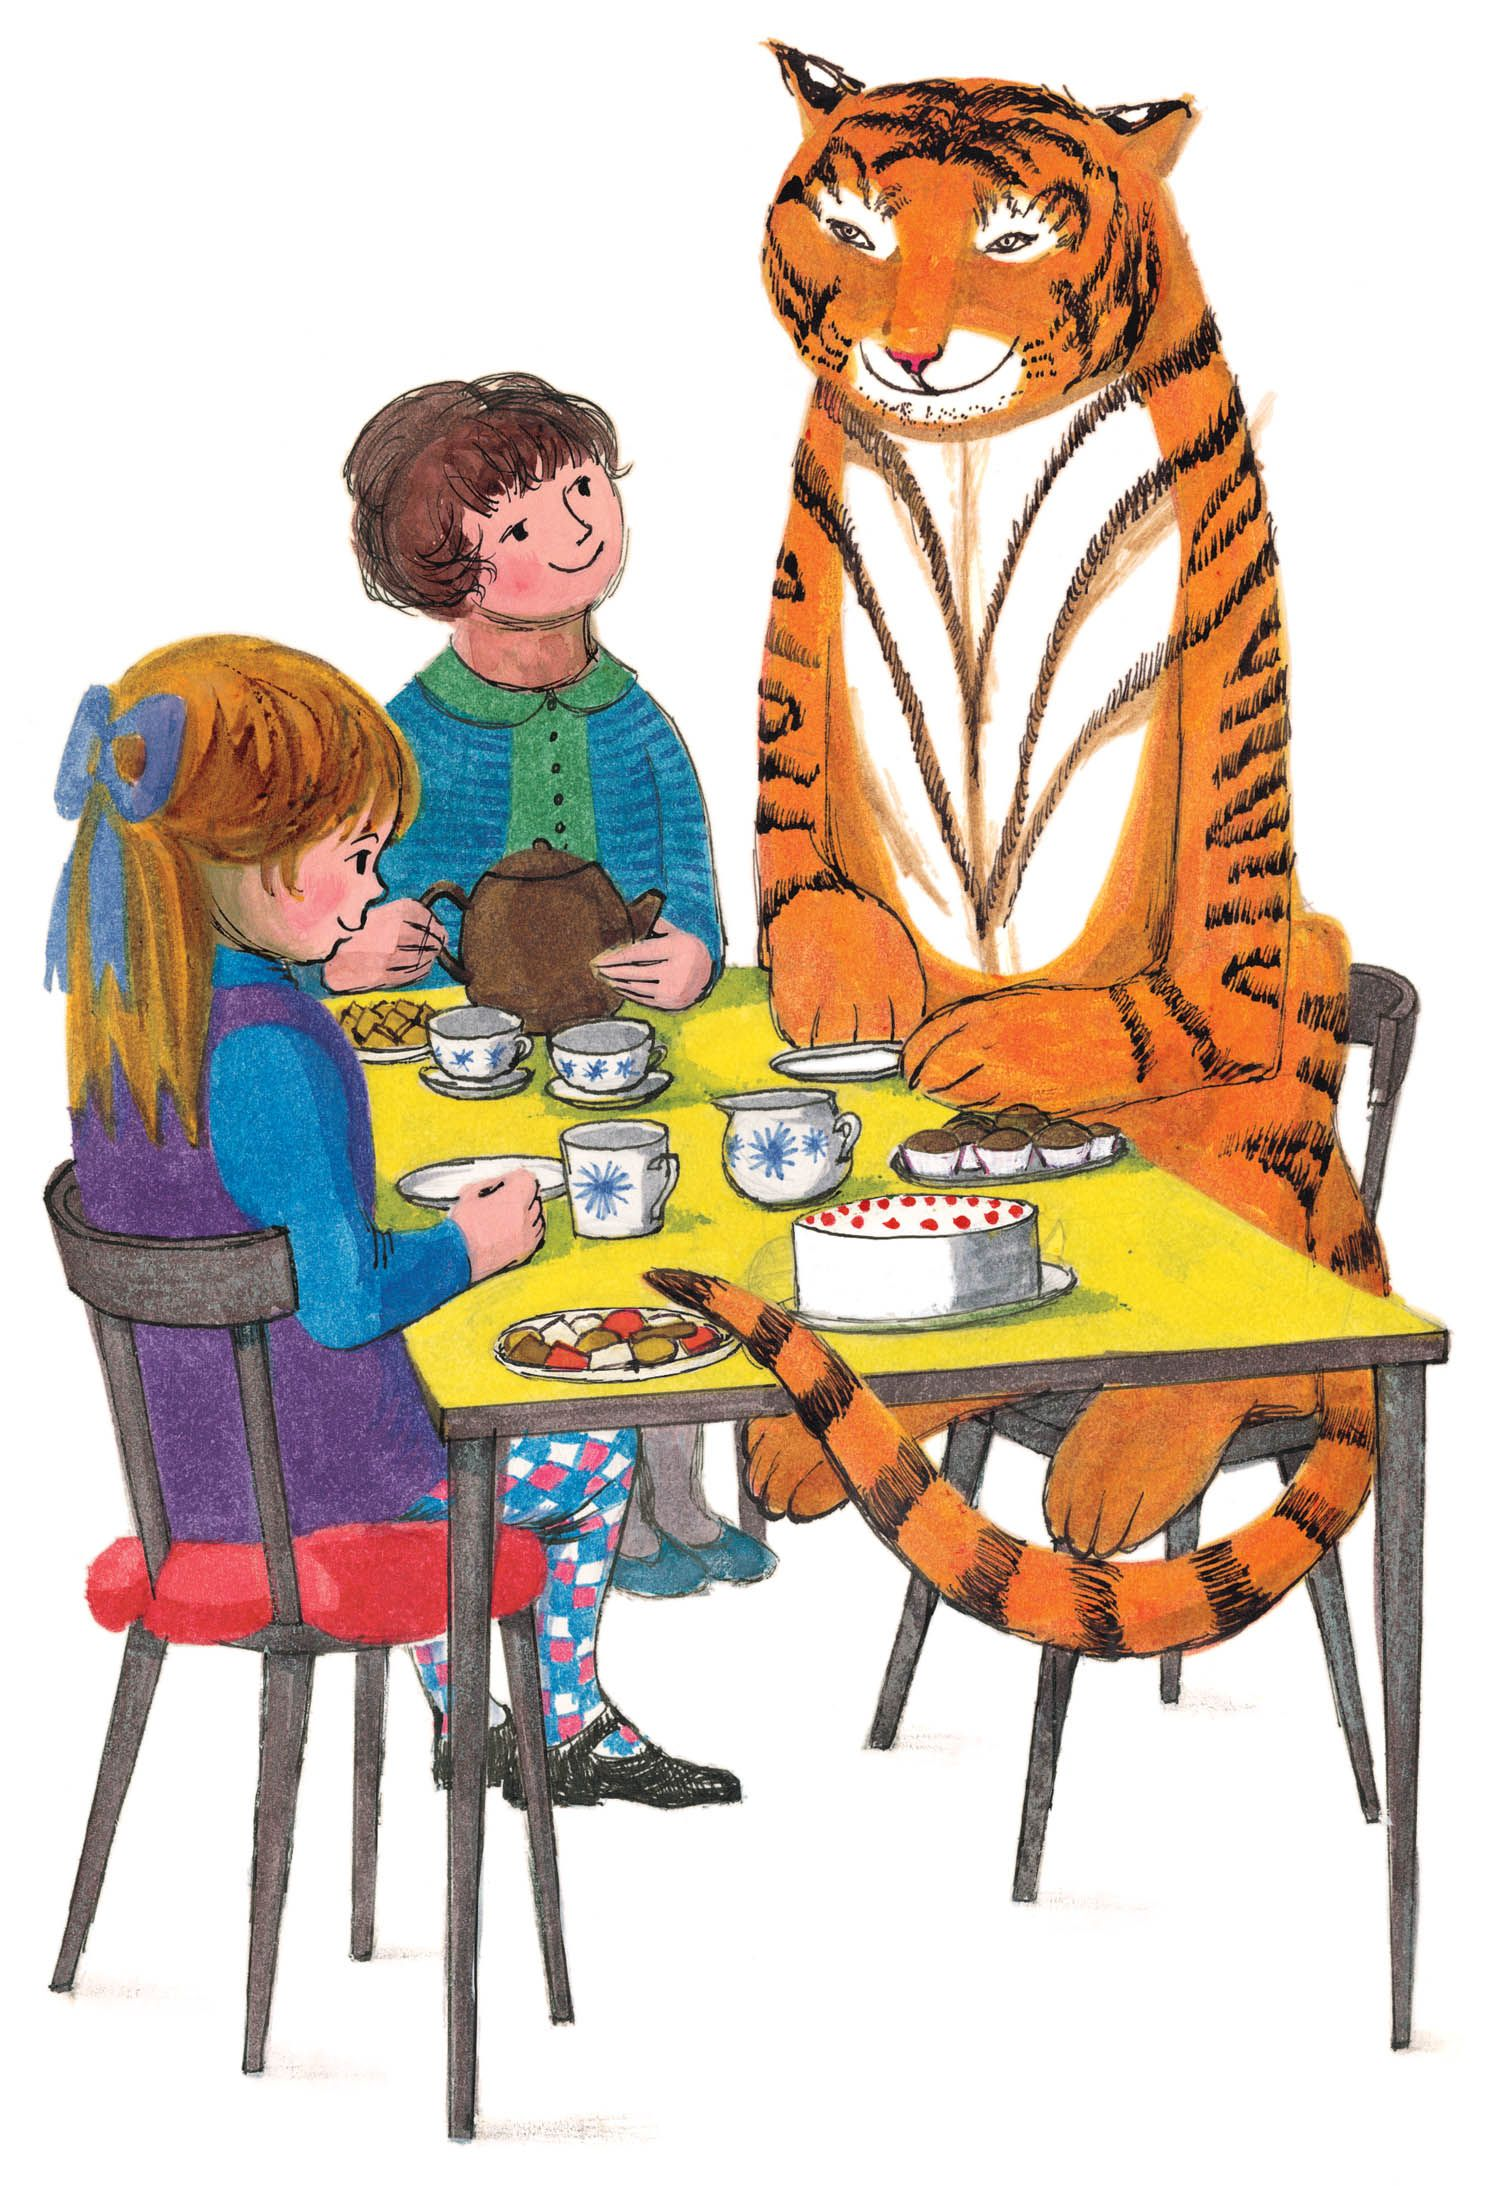 The Tiger Who Came To Tea This Is A Unique Silkscreen Edition Published By Illustration Cupb Children S Book Illustration Illustration Children Illustration